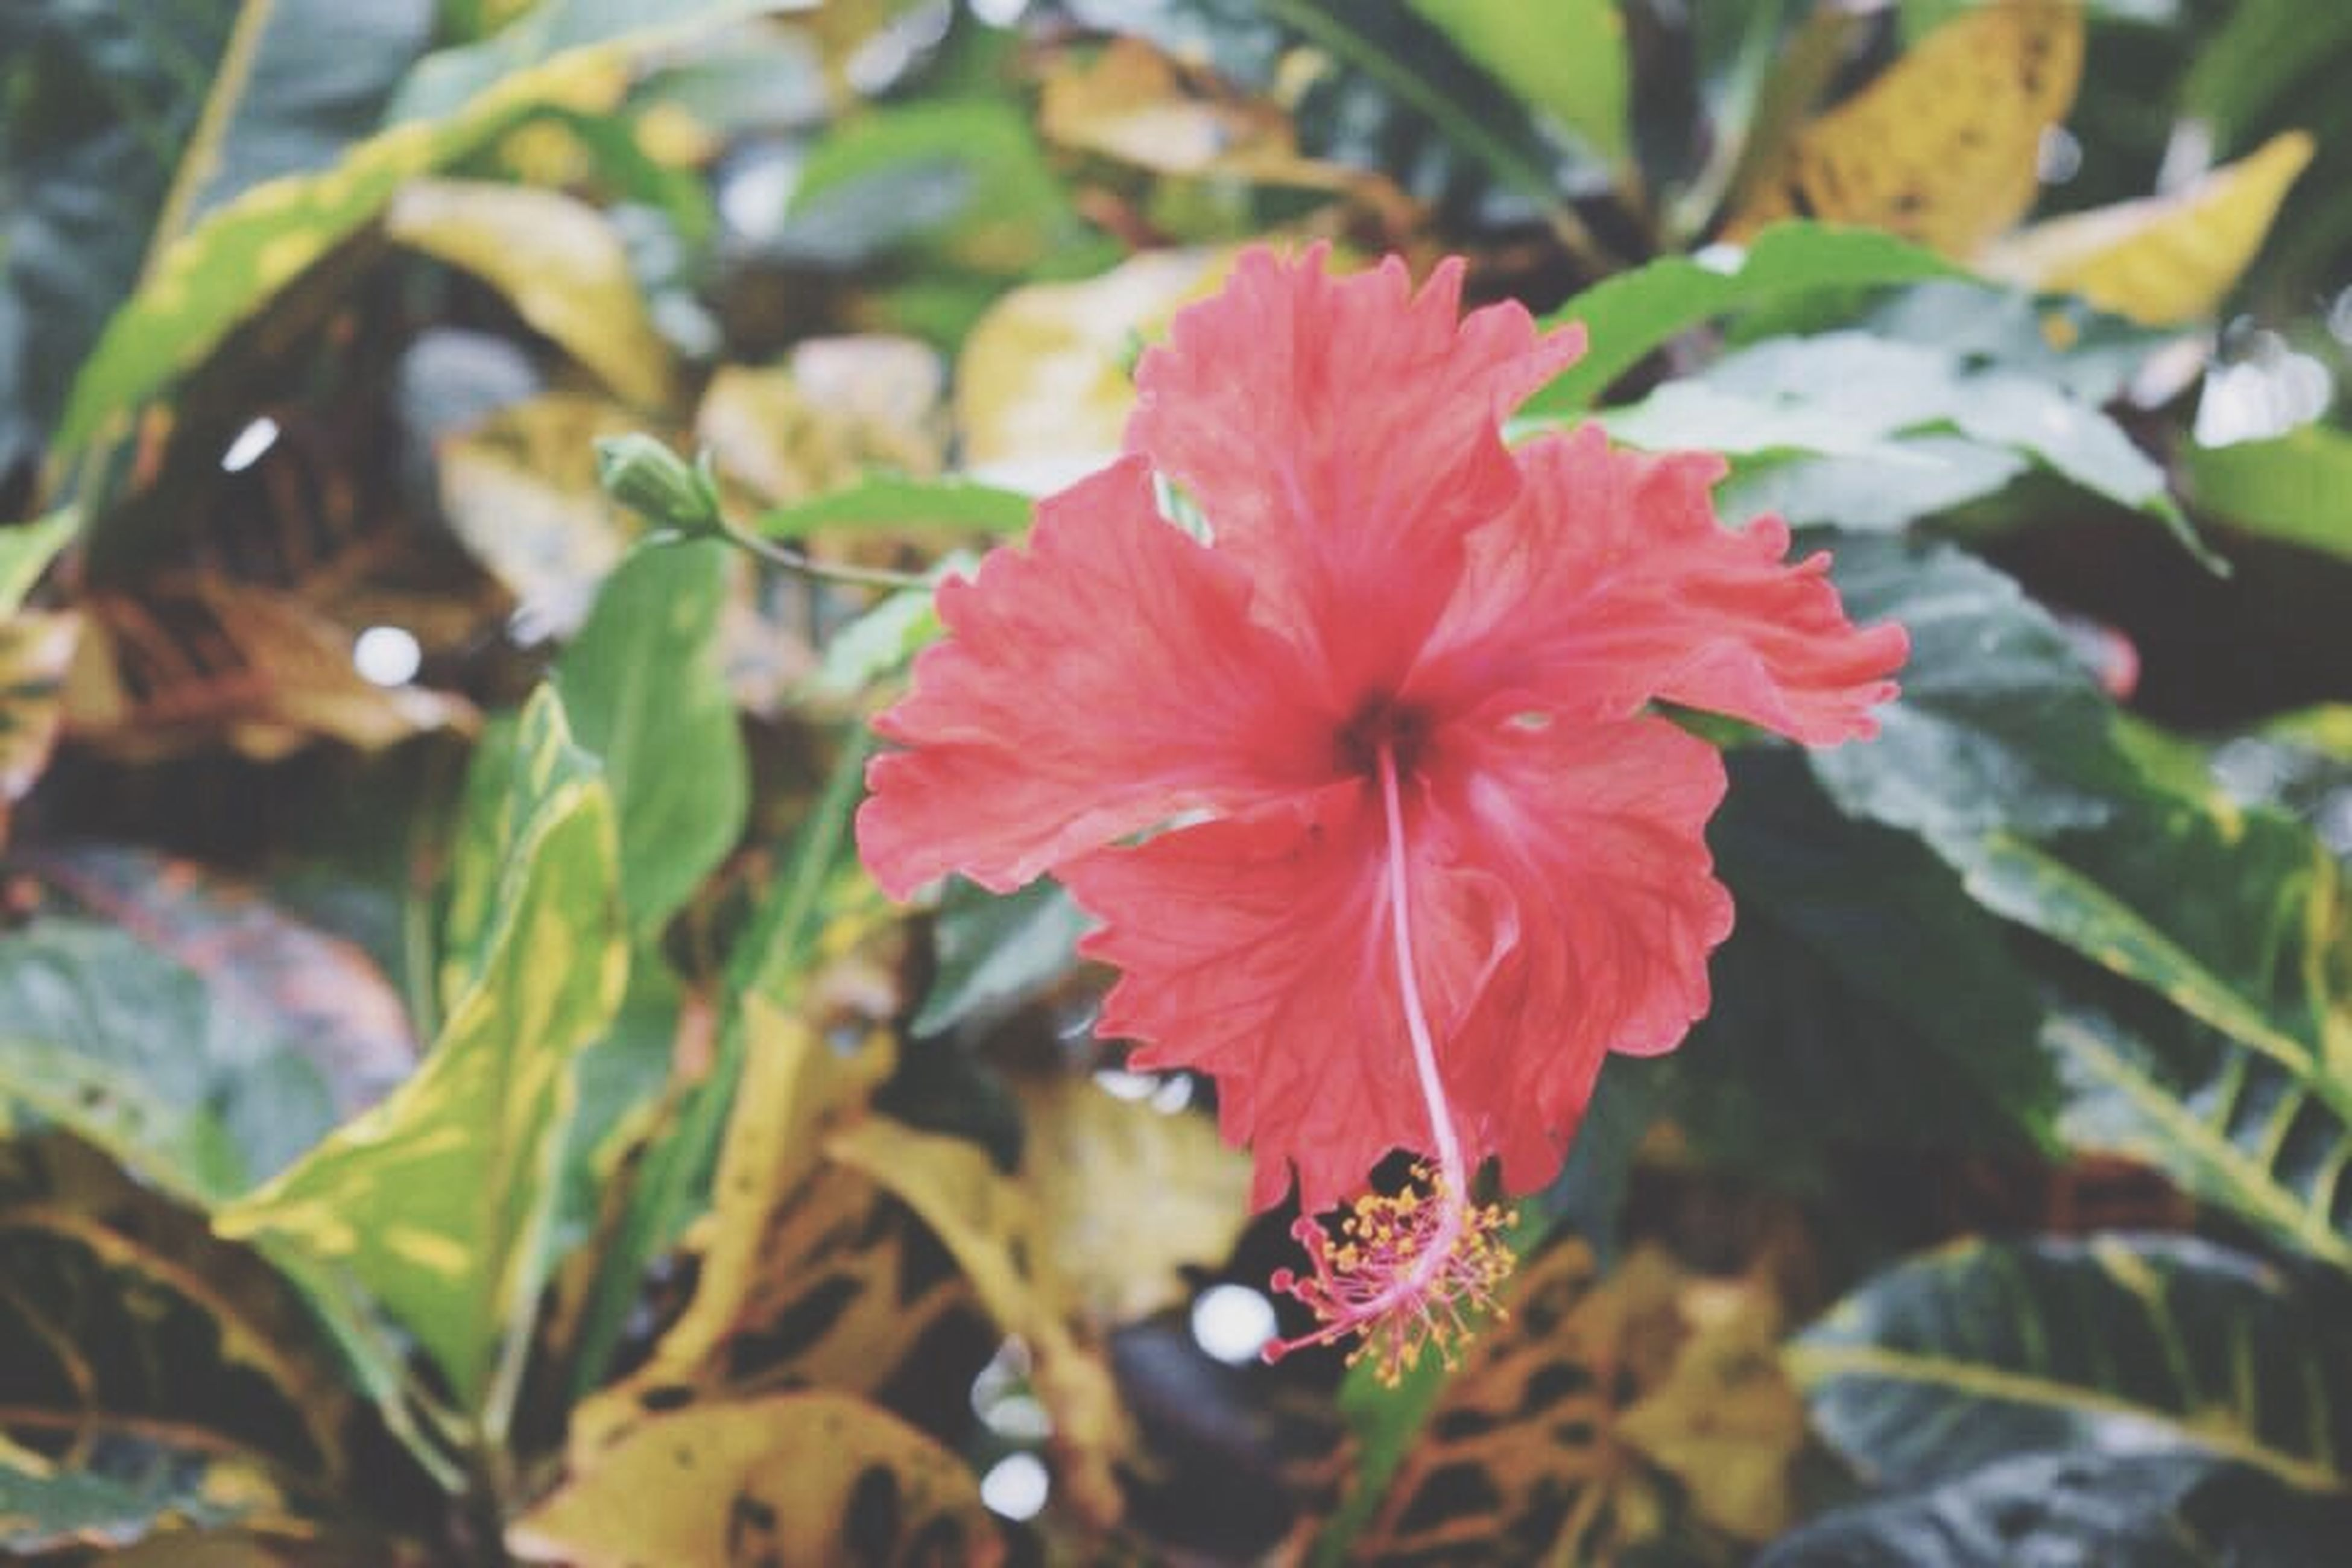 flower, growth, petal, freshness, fragility, flower head, beauty in nature, plant, close-up, leaf, red, nature, focus on foreground, blooming, in bloom, selective focus, single flower, day, orange color, outdoors